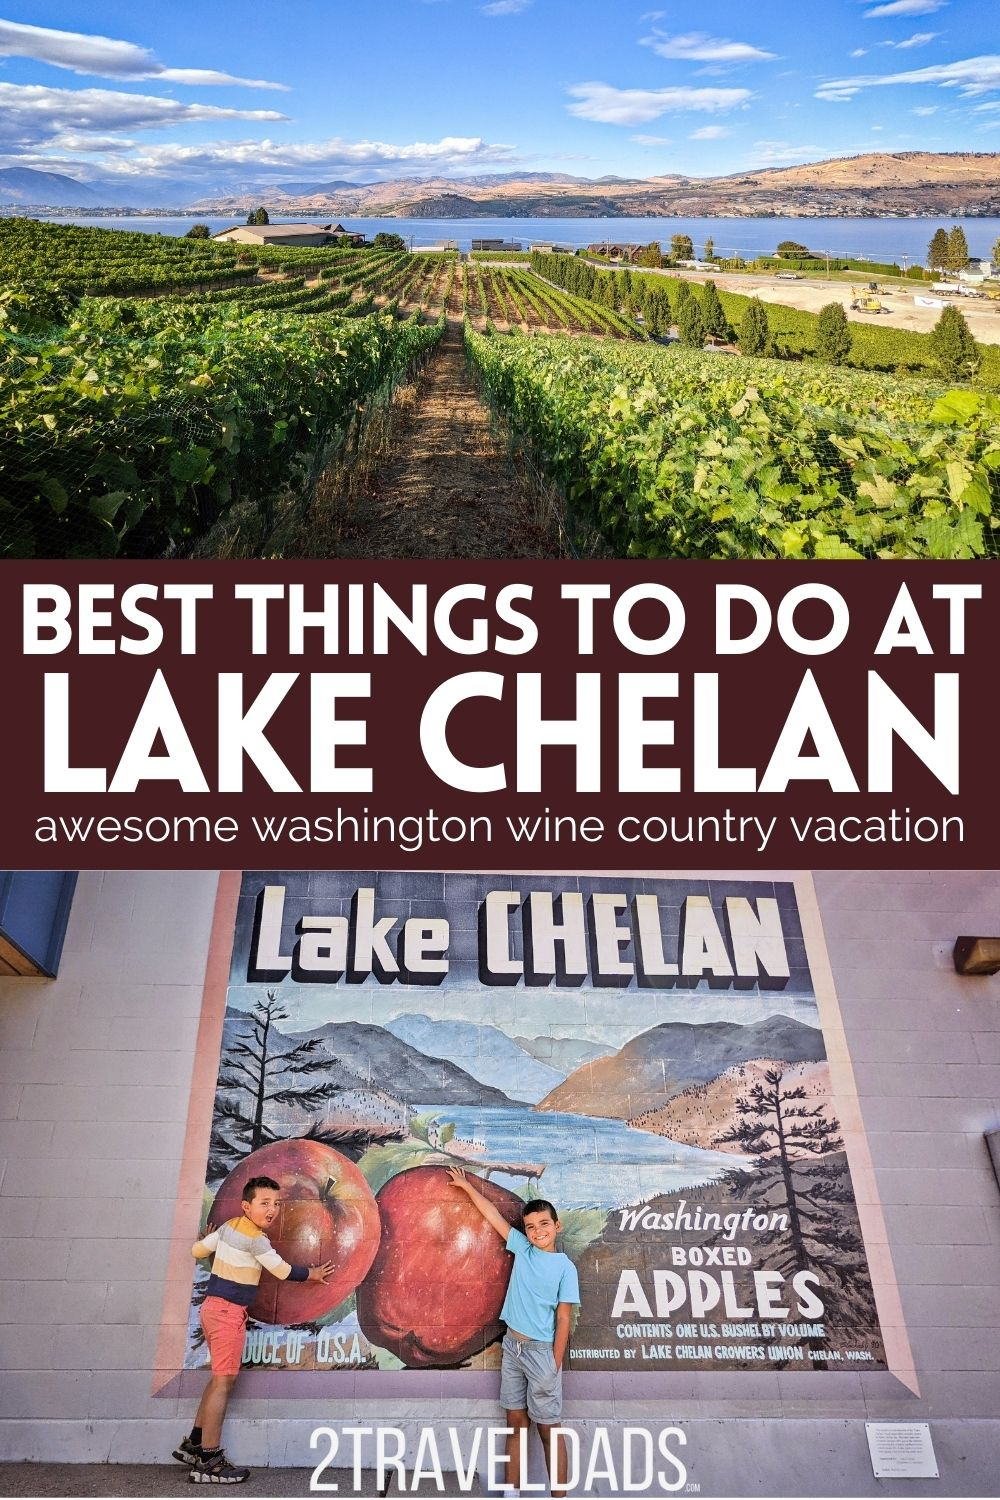 With so many things to do at Lake Chelan, it's no wonder this part of Washington Wine Country is so popular with locals. Wine tasting, hiking, boating and more, plan a fun vacation to Washington's year-round playground.